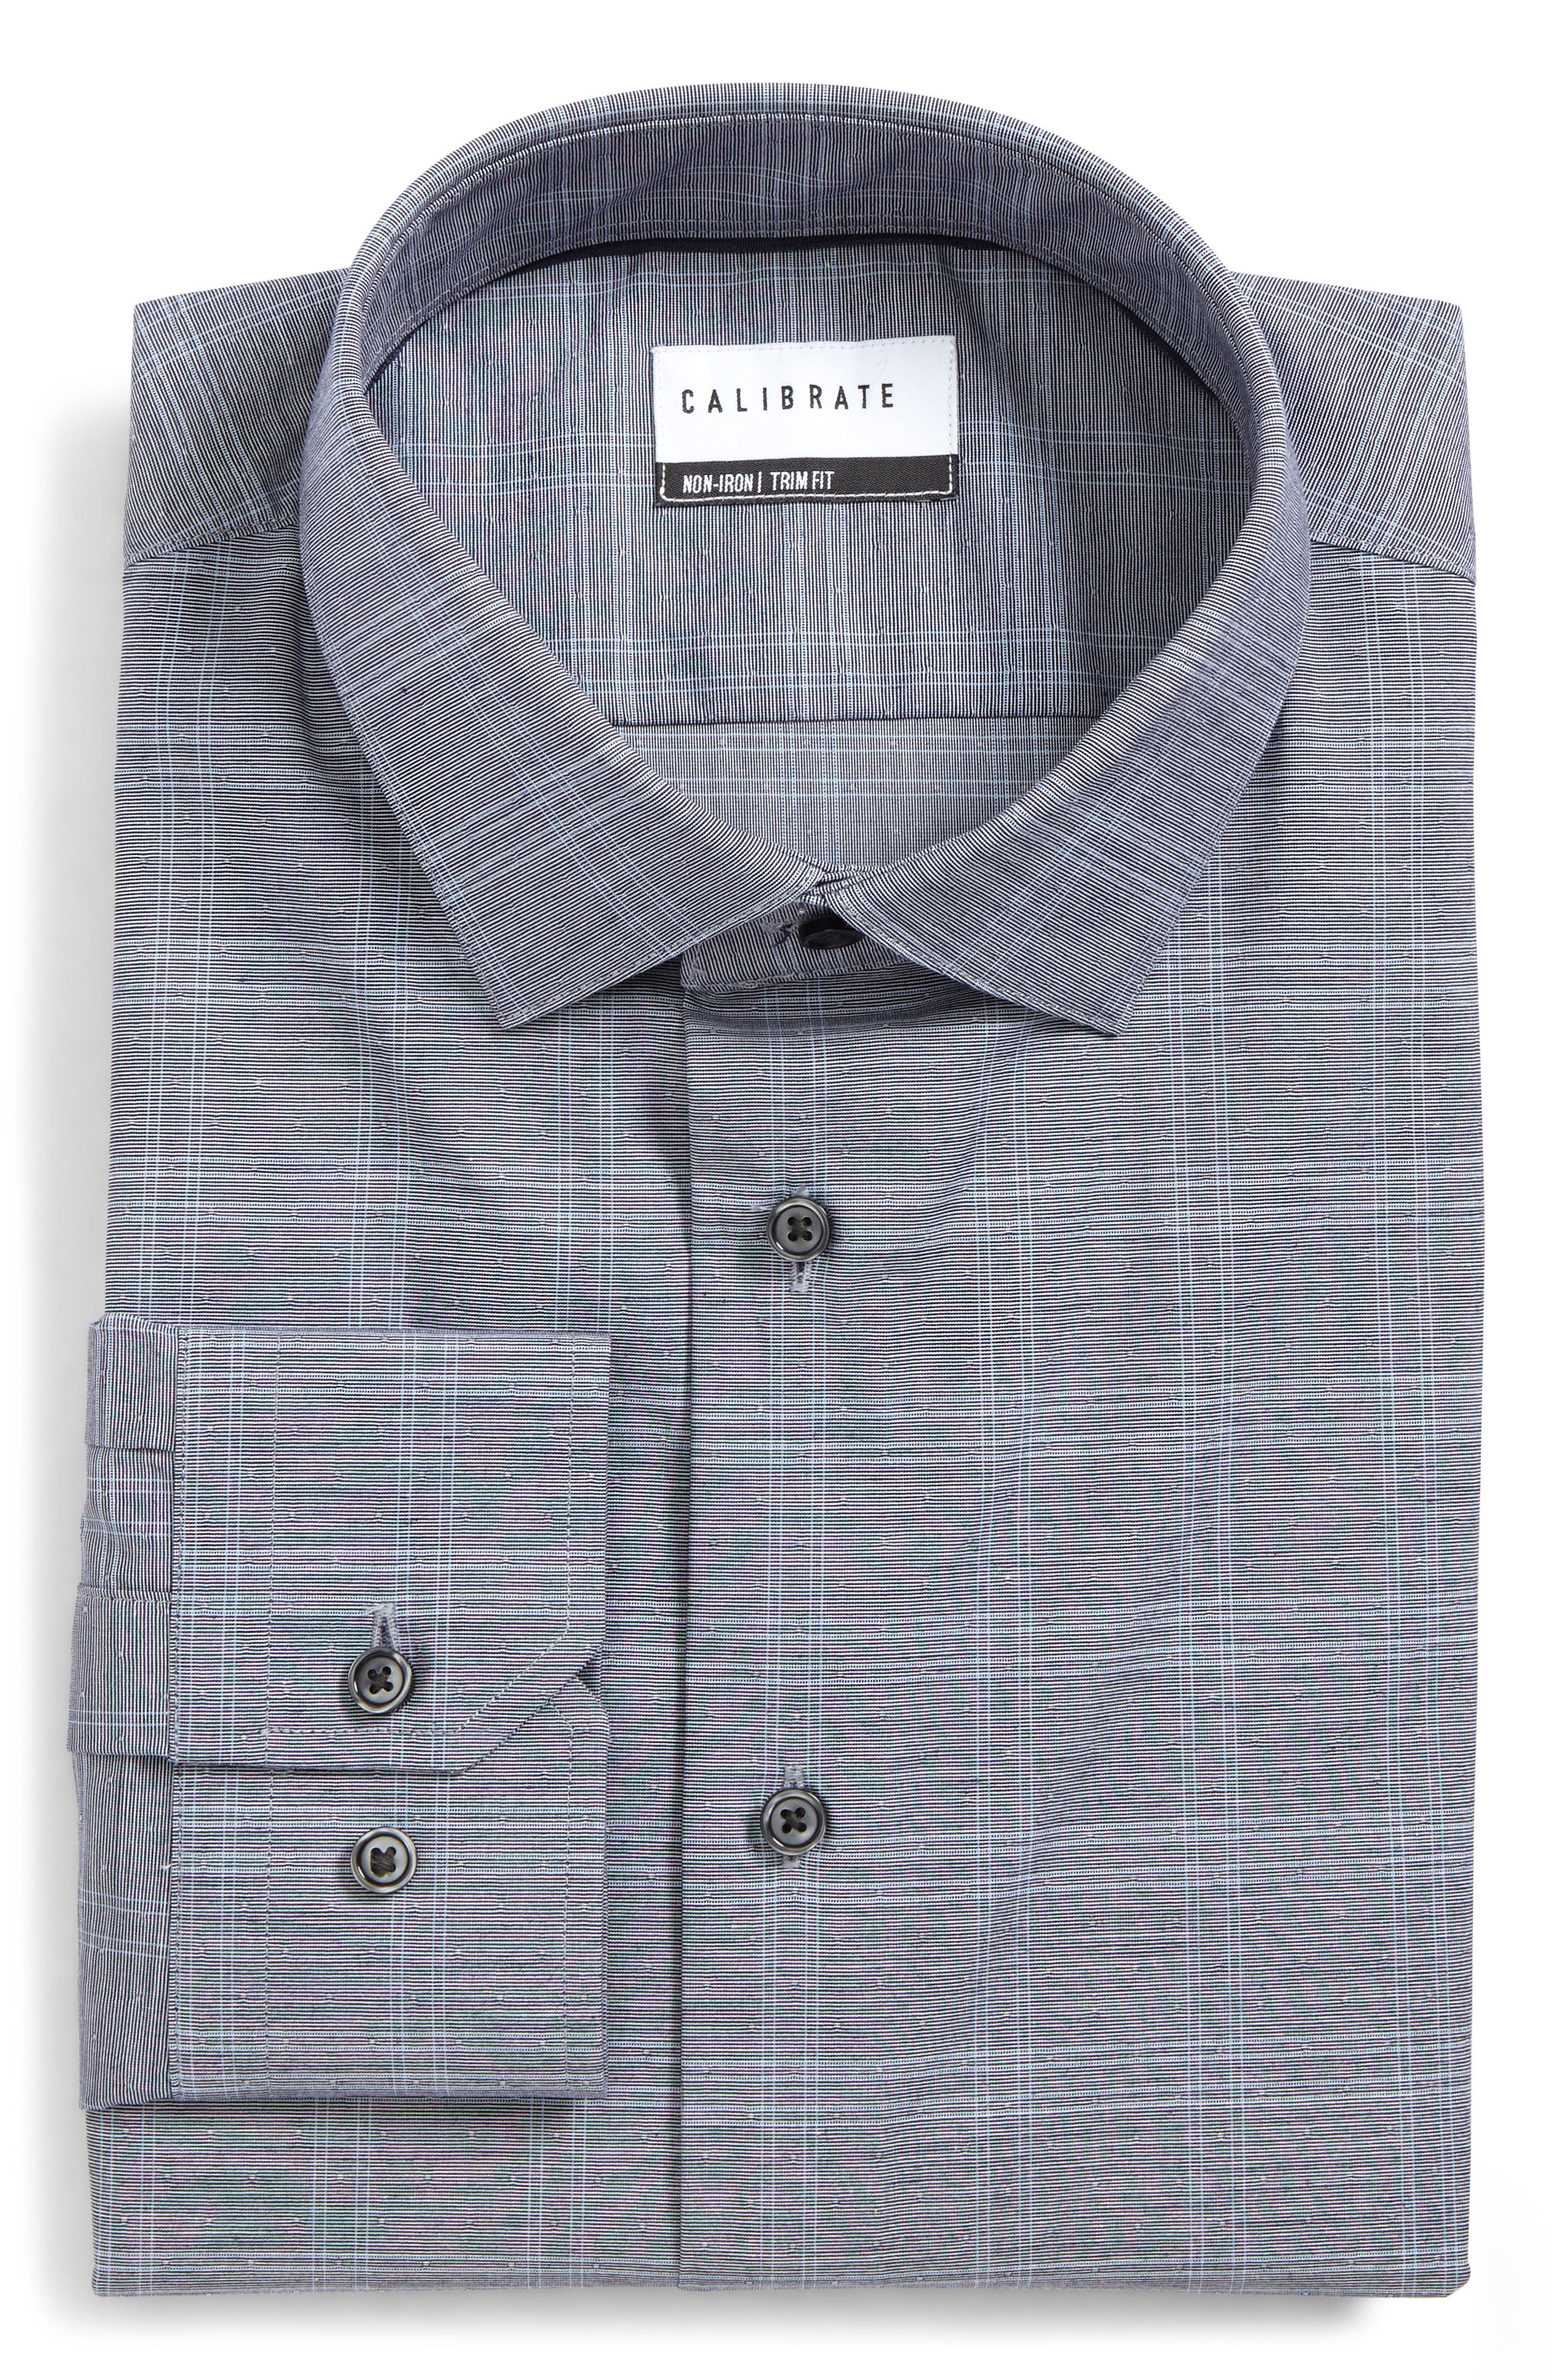 Alternate Image 1 Selected - Calibrate Trim Fit Non-Iron Stretch Check Dress Shirt